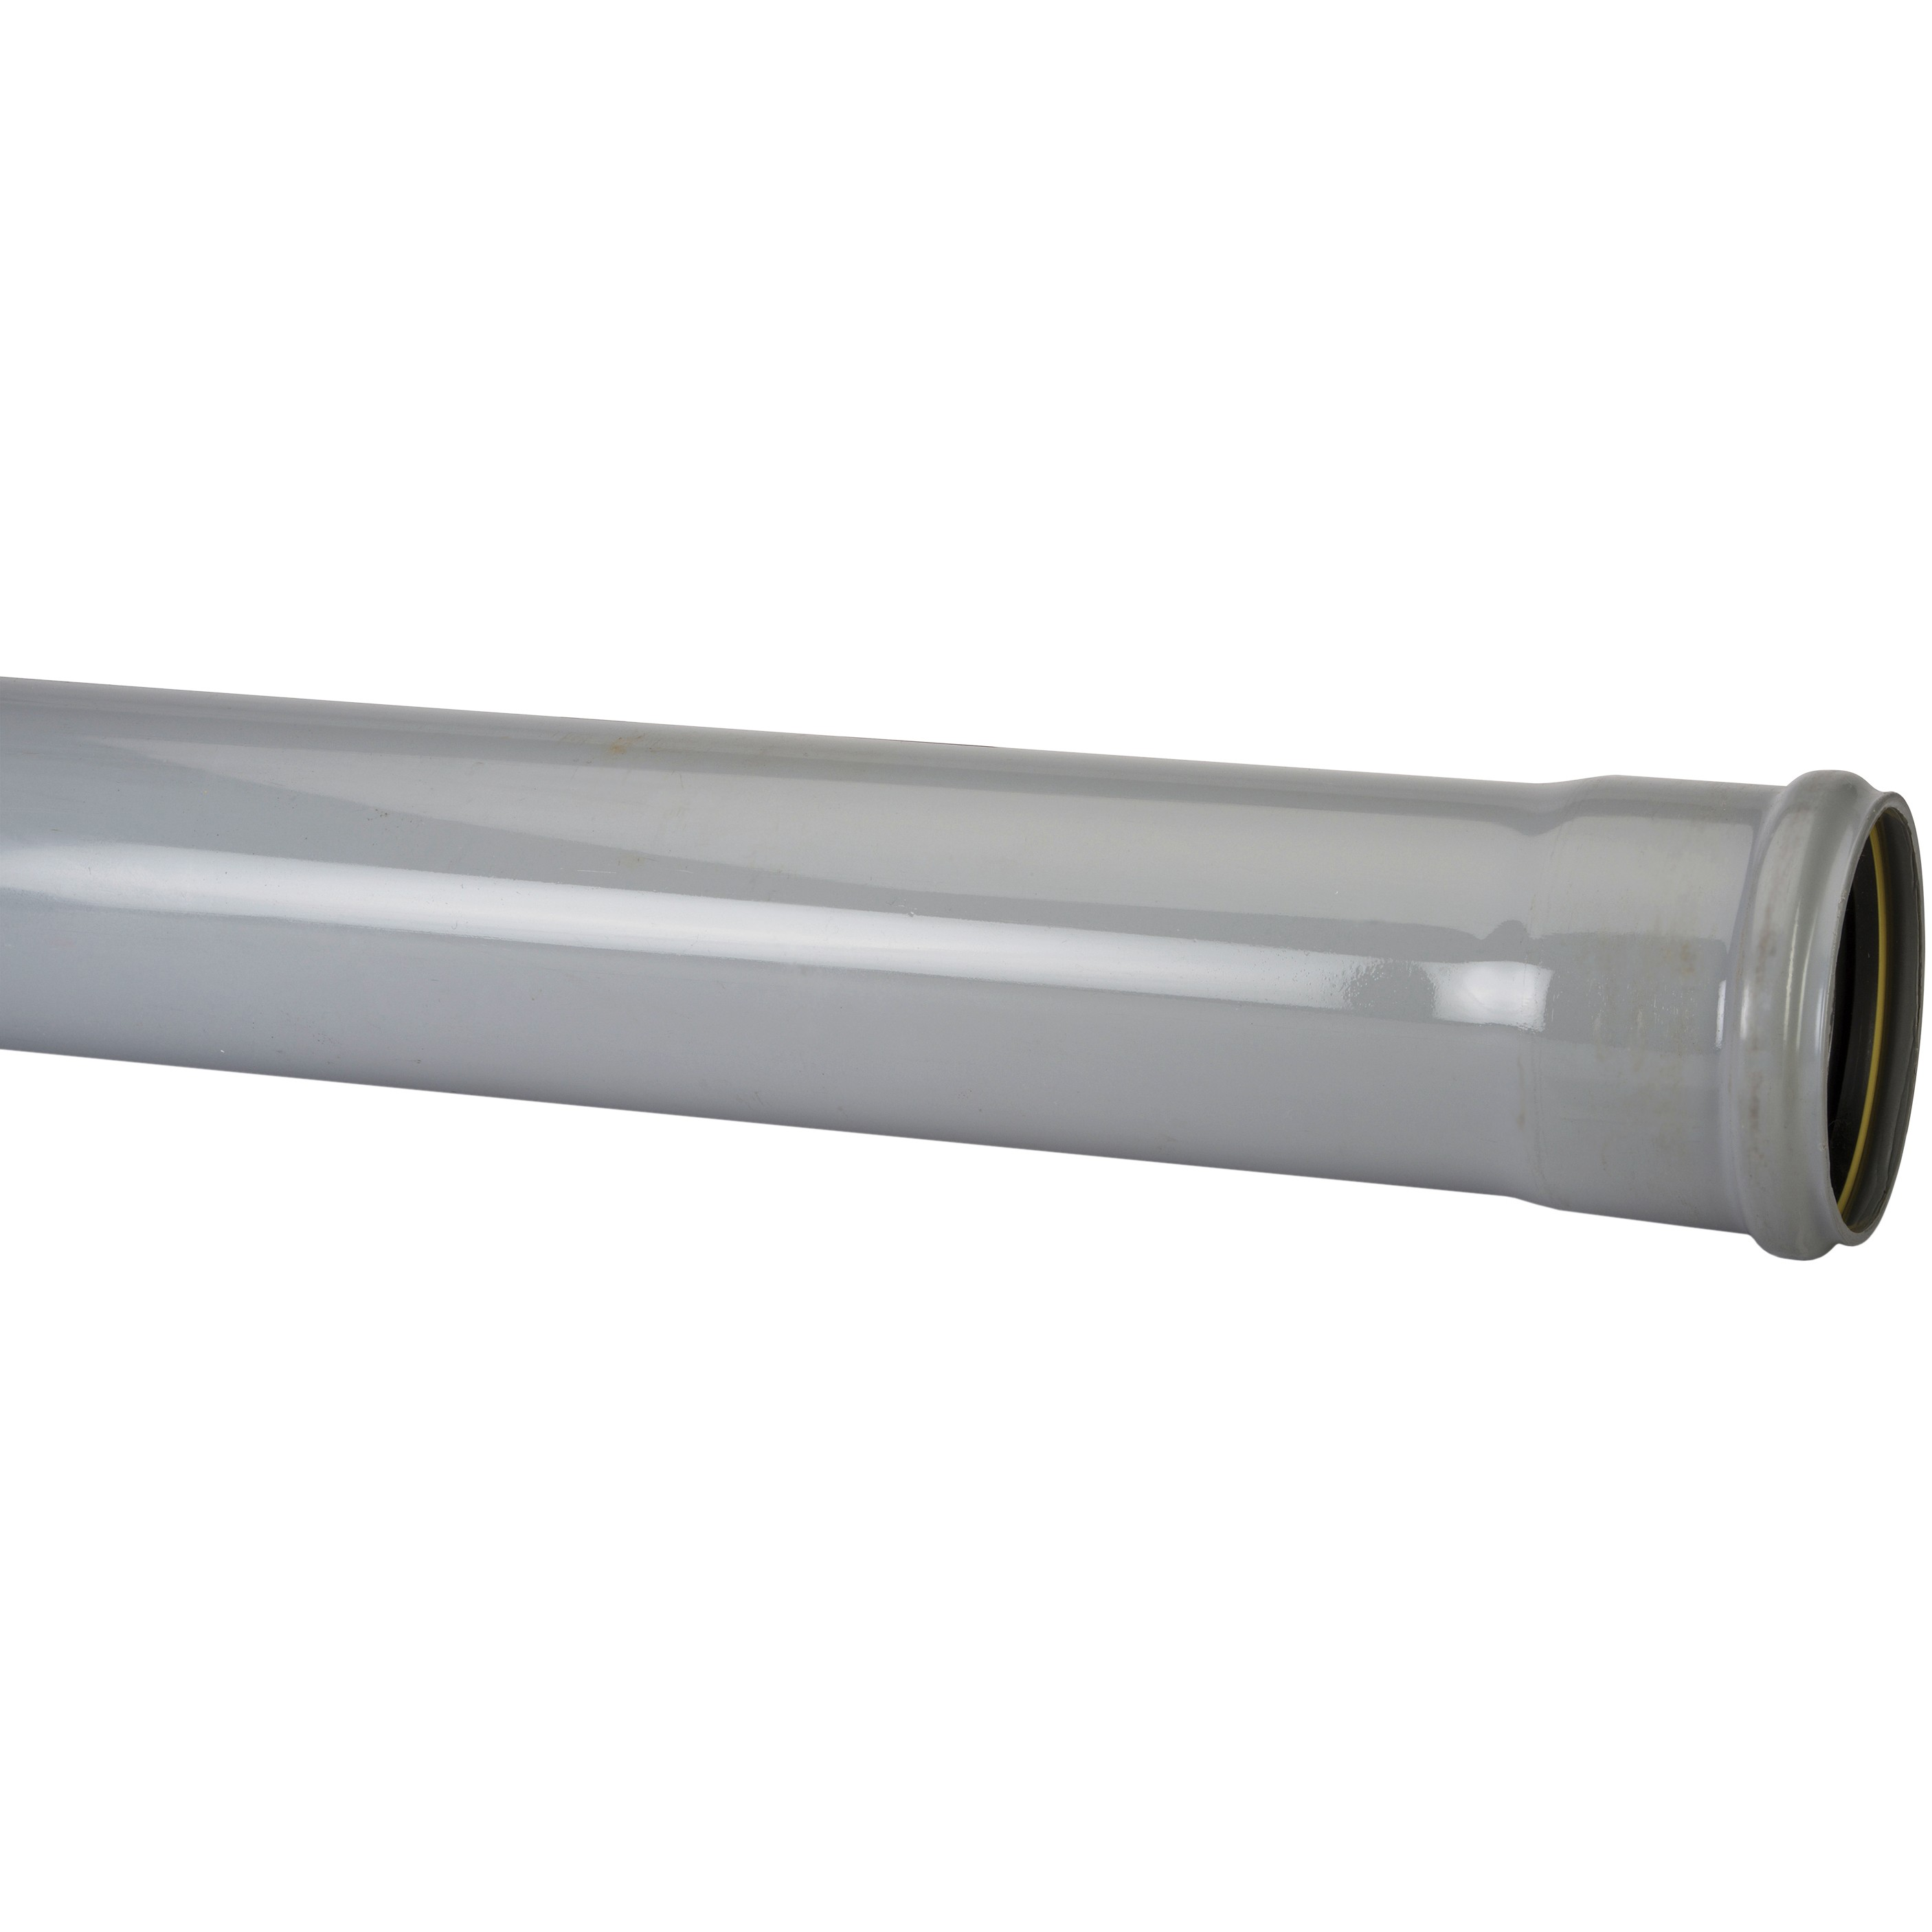 Polypipe 110mm Soil Single Socket Pipe - Grey, 3 metre